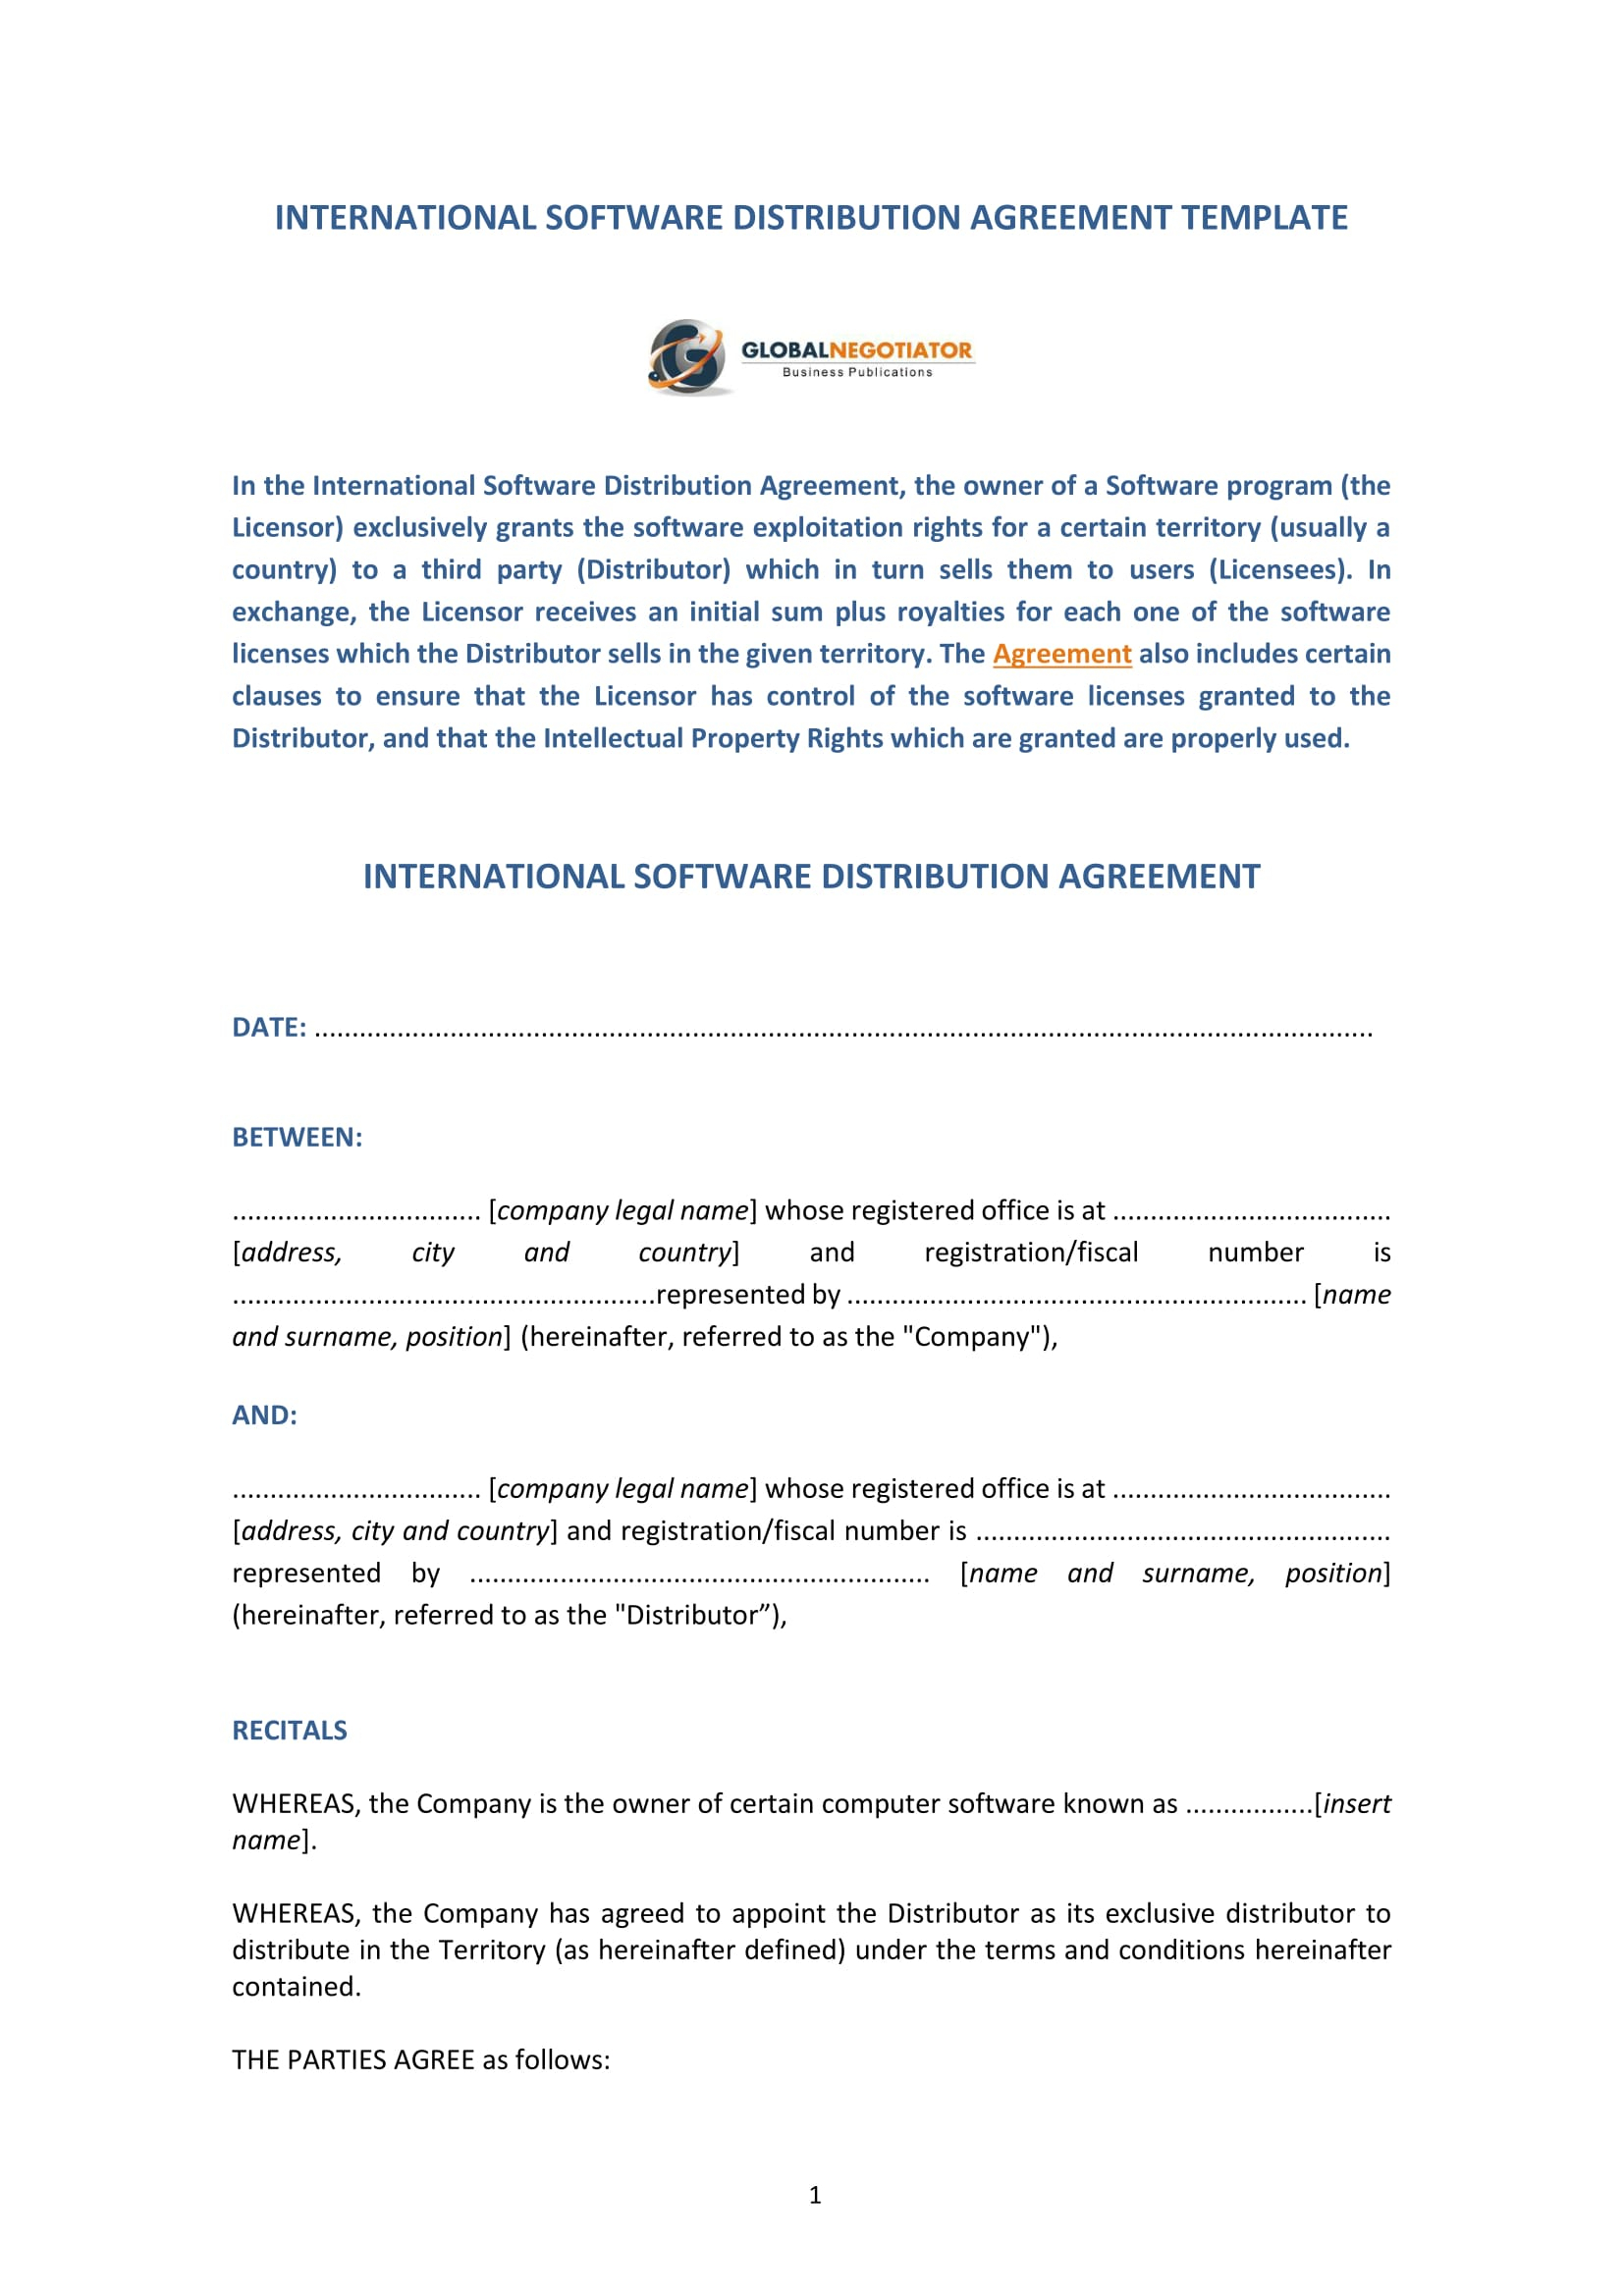 Distributor Agreement Sample Contract 4 Software Distribution Agreement Forms Pdf Word